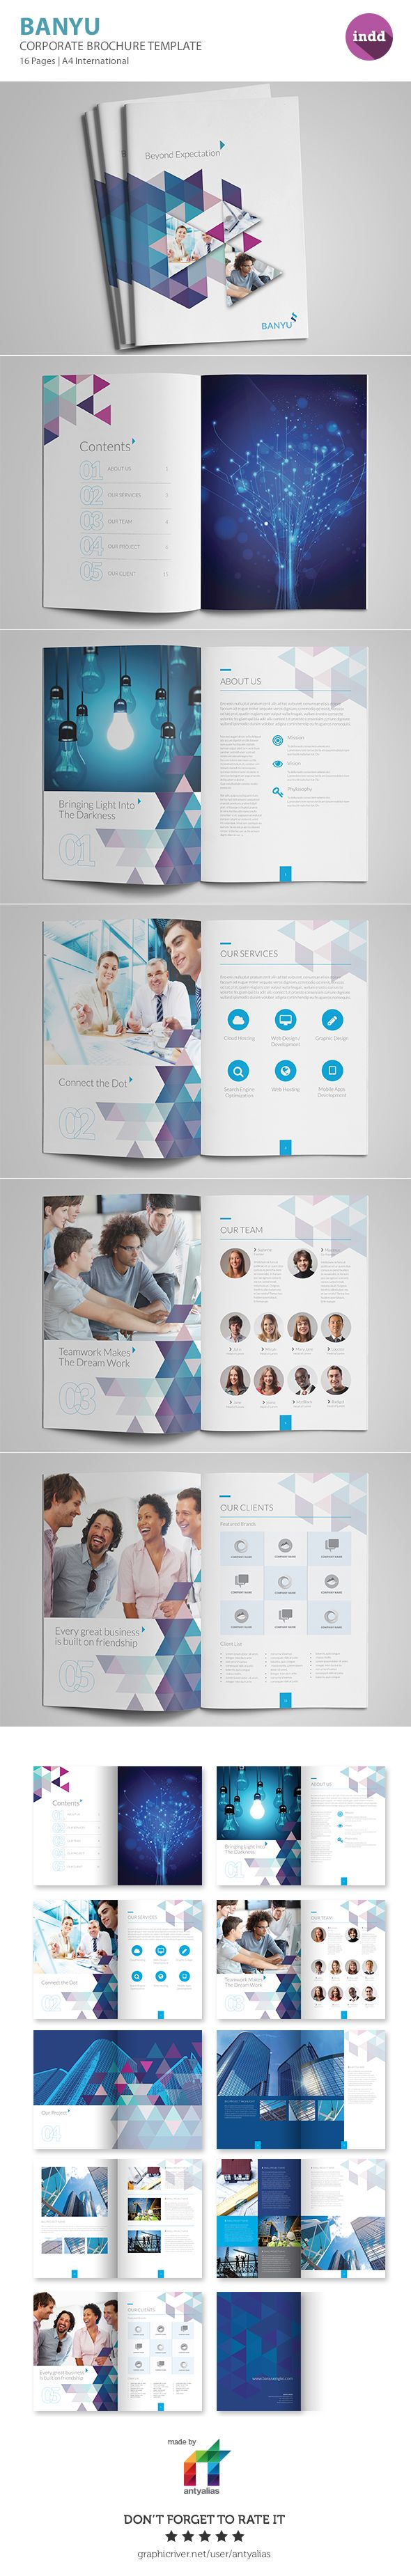 BANYU - Professional Corporate Brochure Templates on Behance